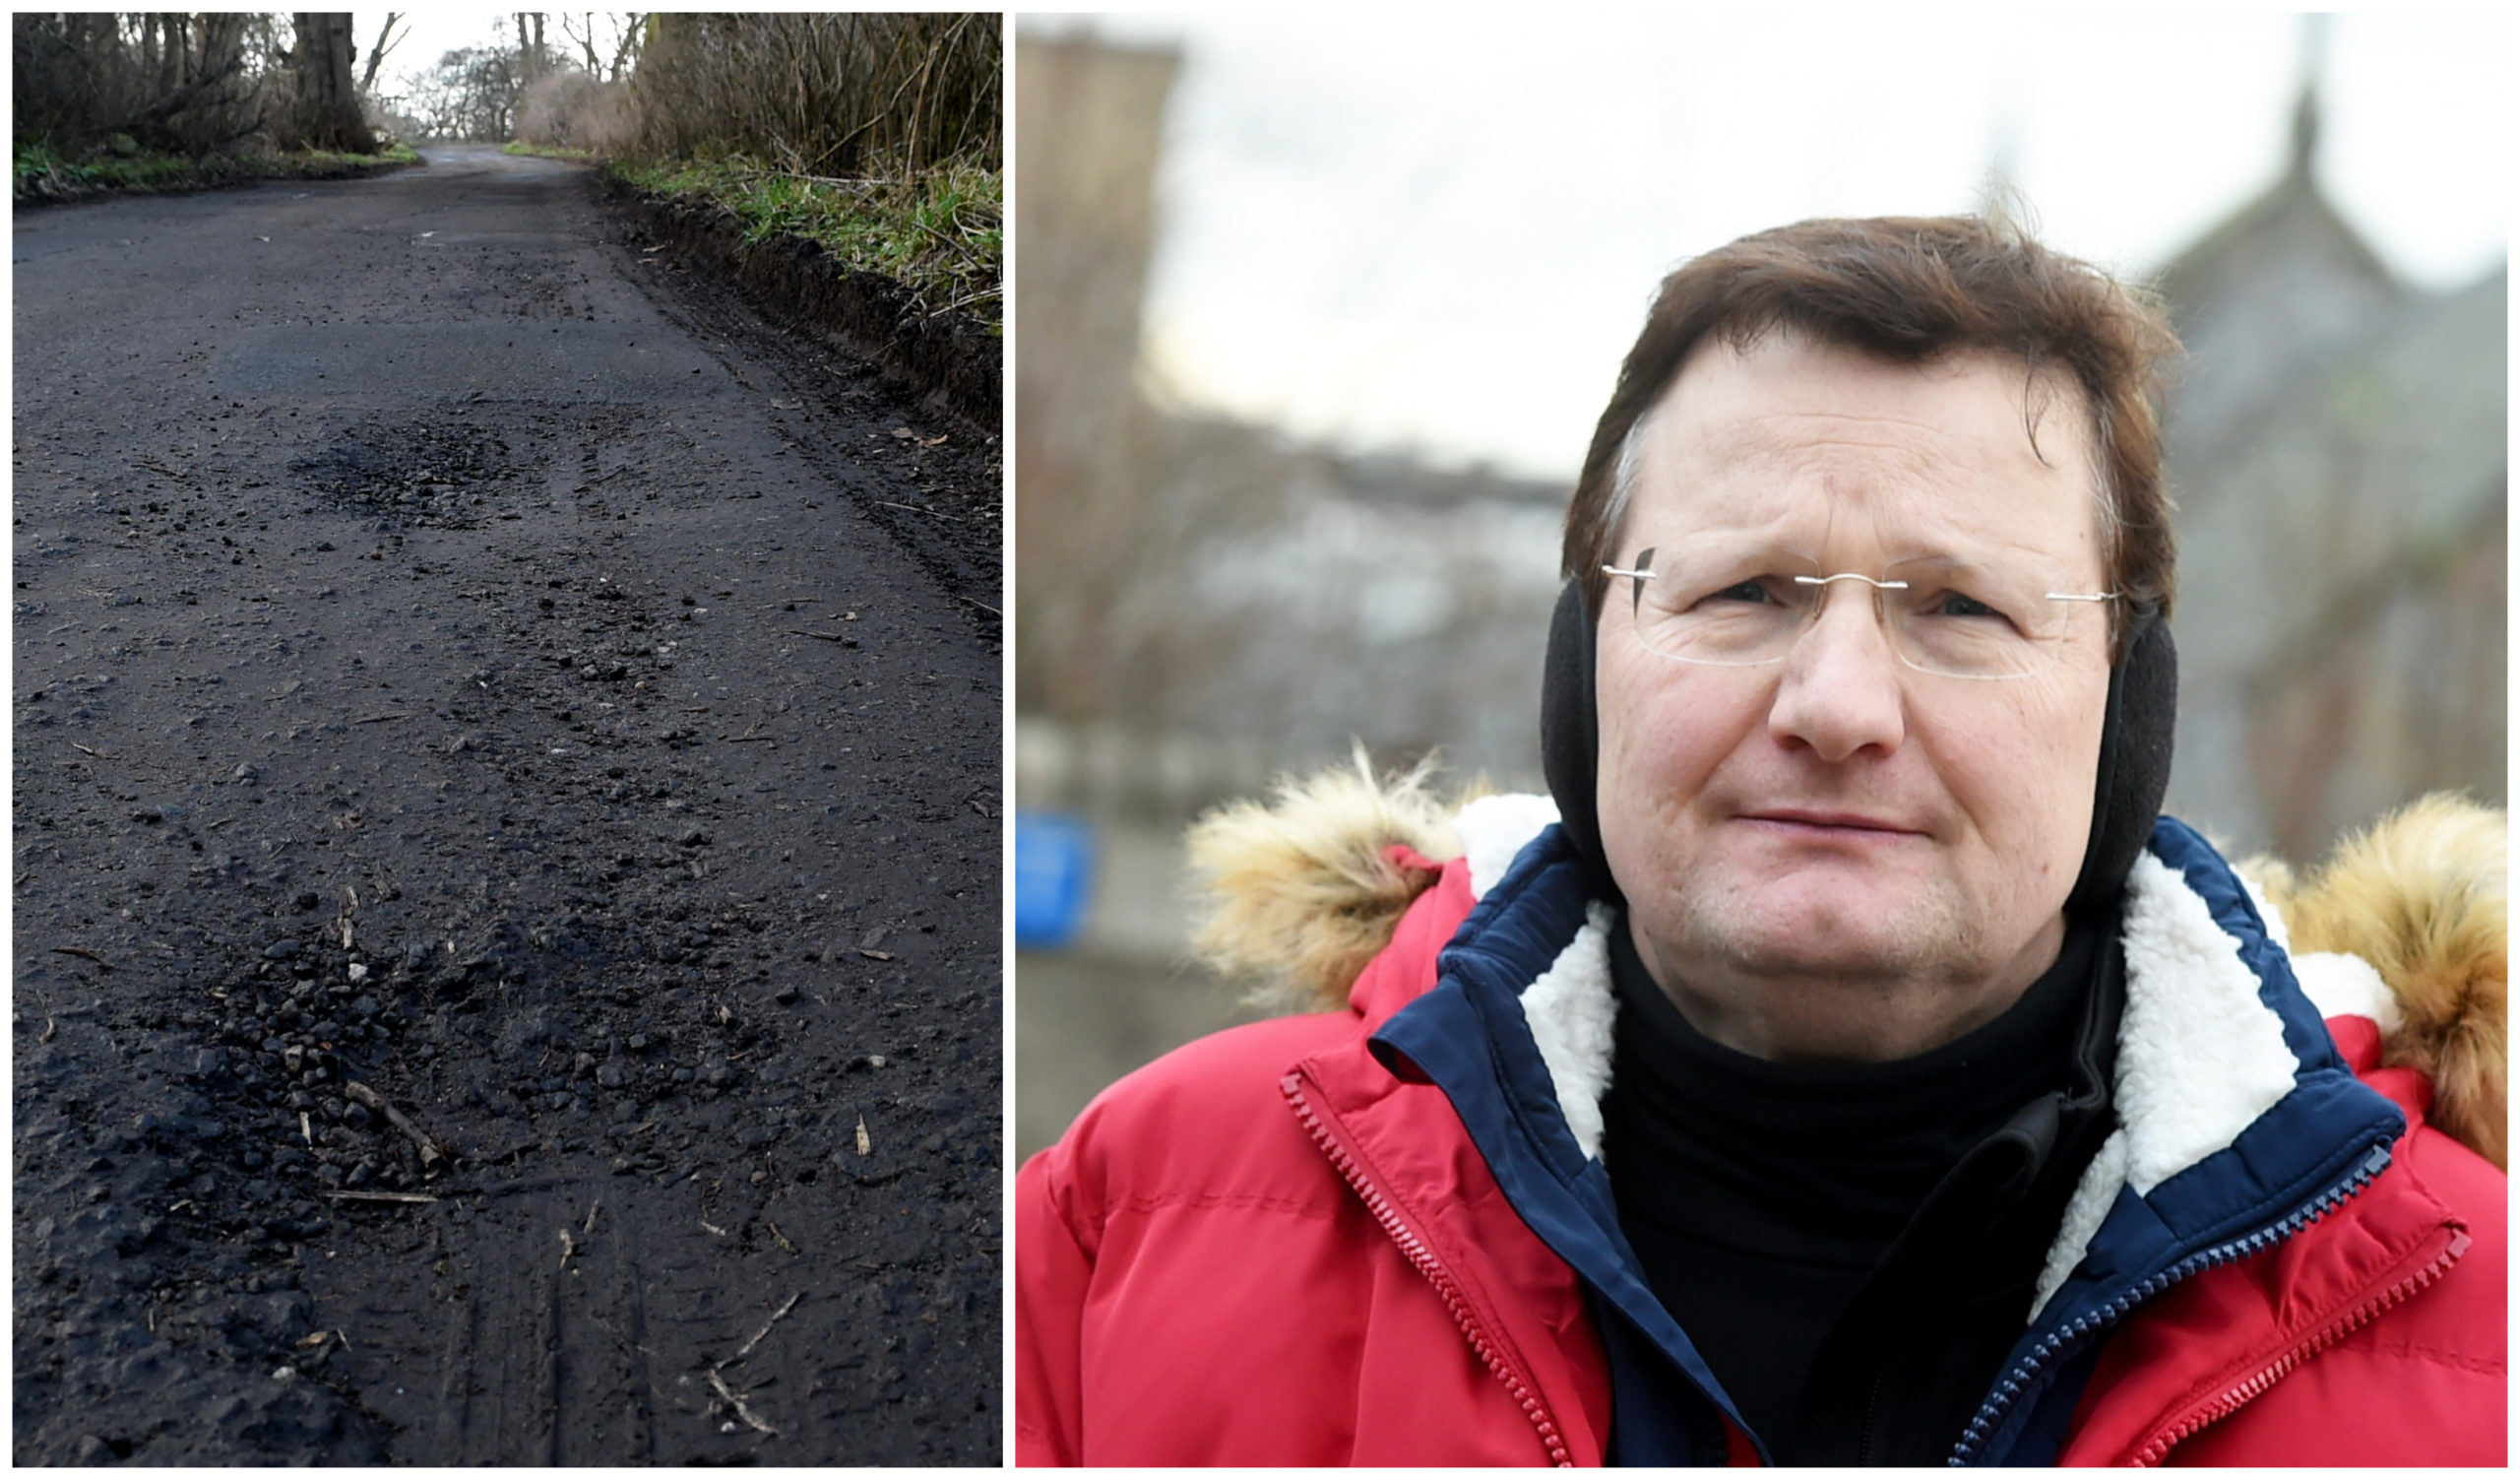 Markus Auffermann from Woodside Parish Church has criticised the road leading to Persley Castle Nursing Home